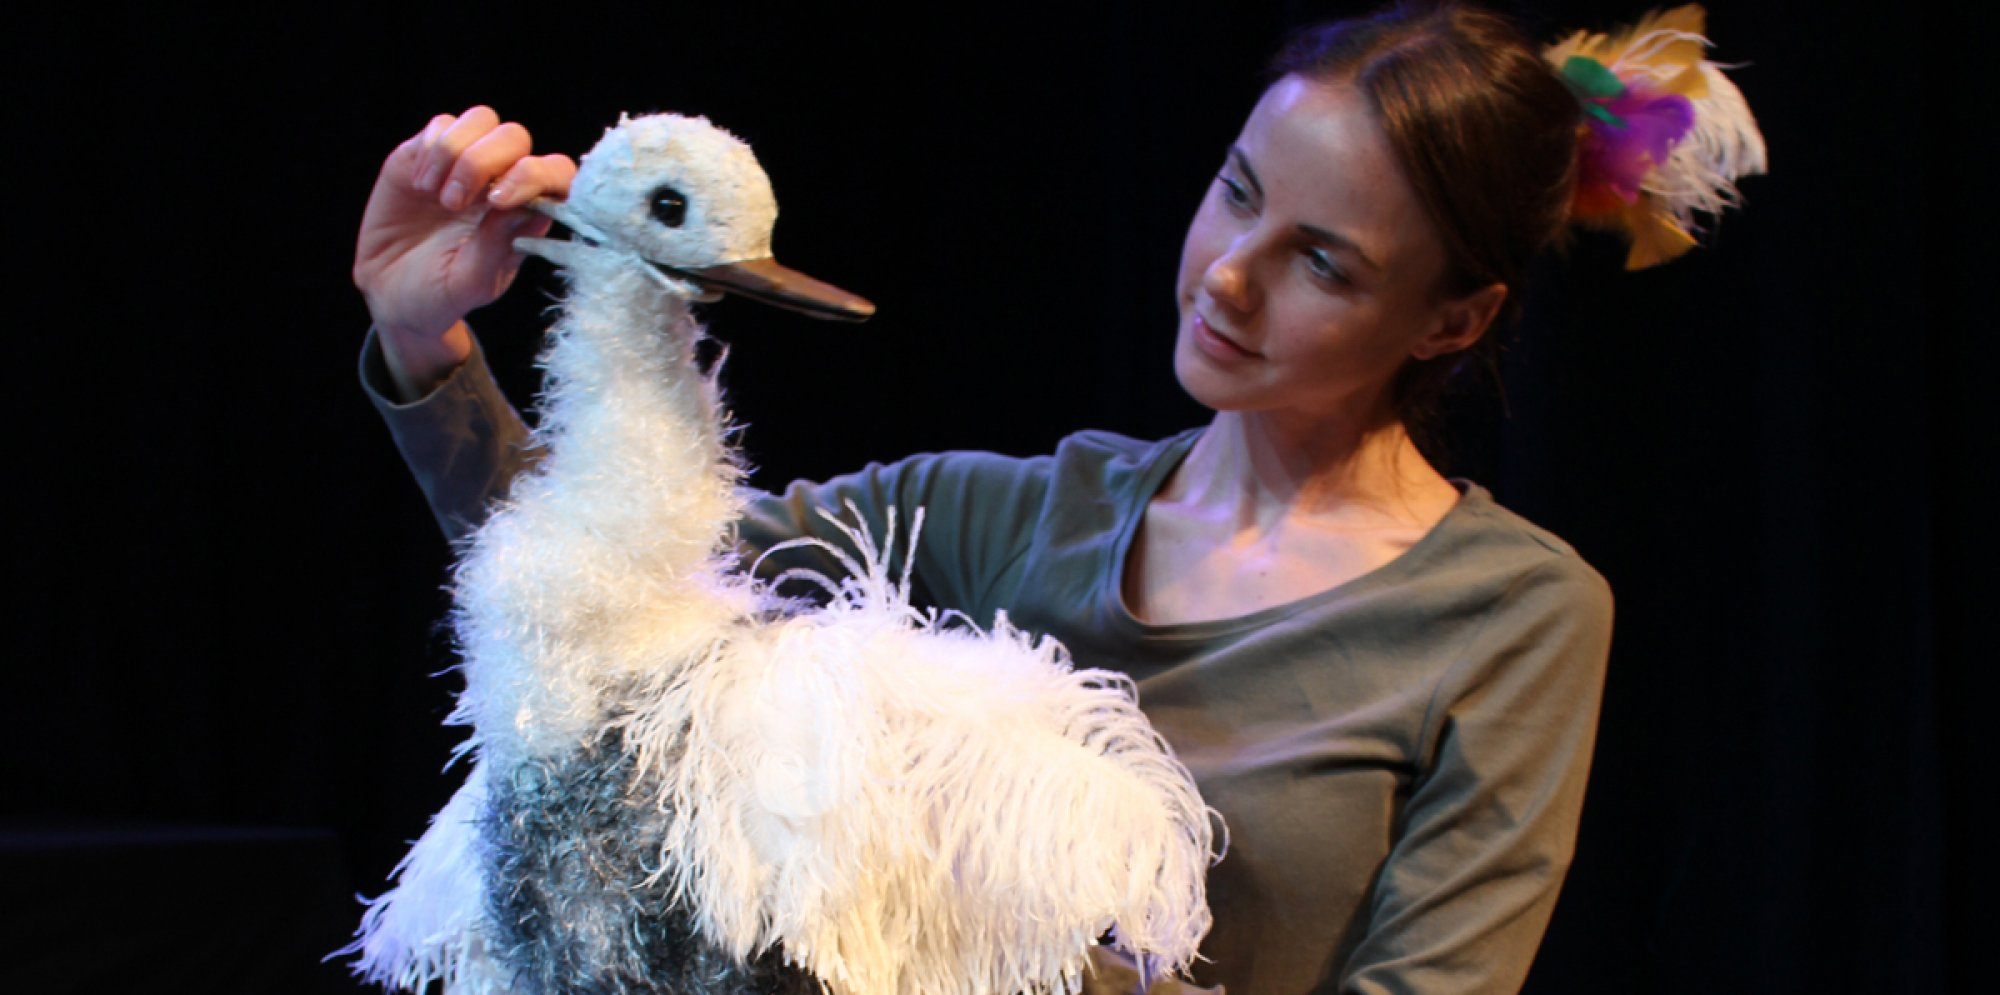 a puppeteer holding and looking at a puppet of a fluffy white goose